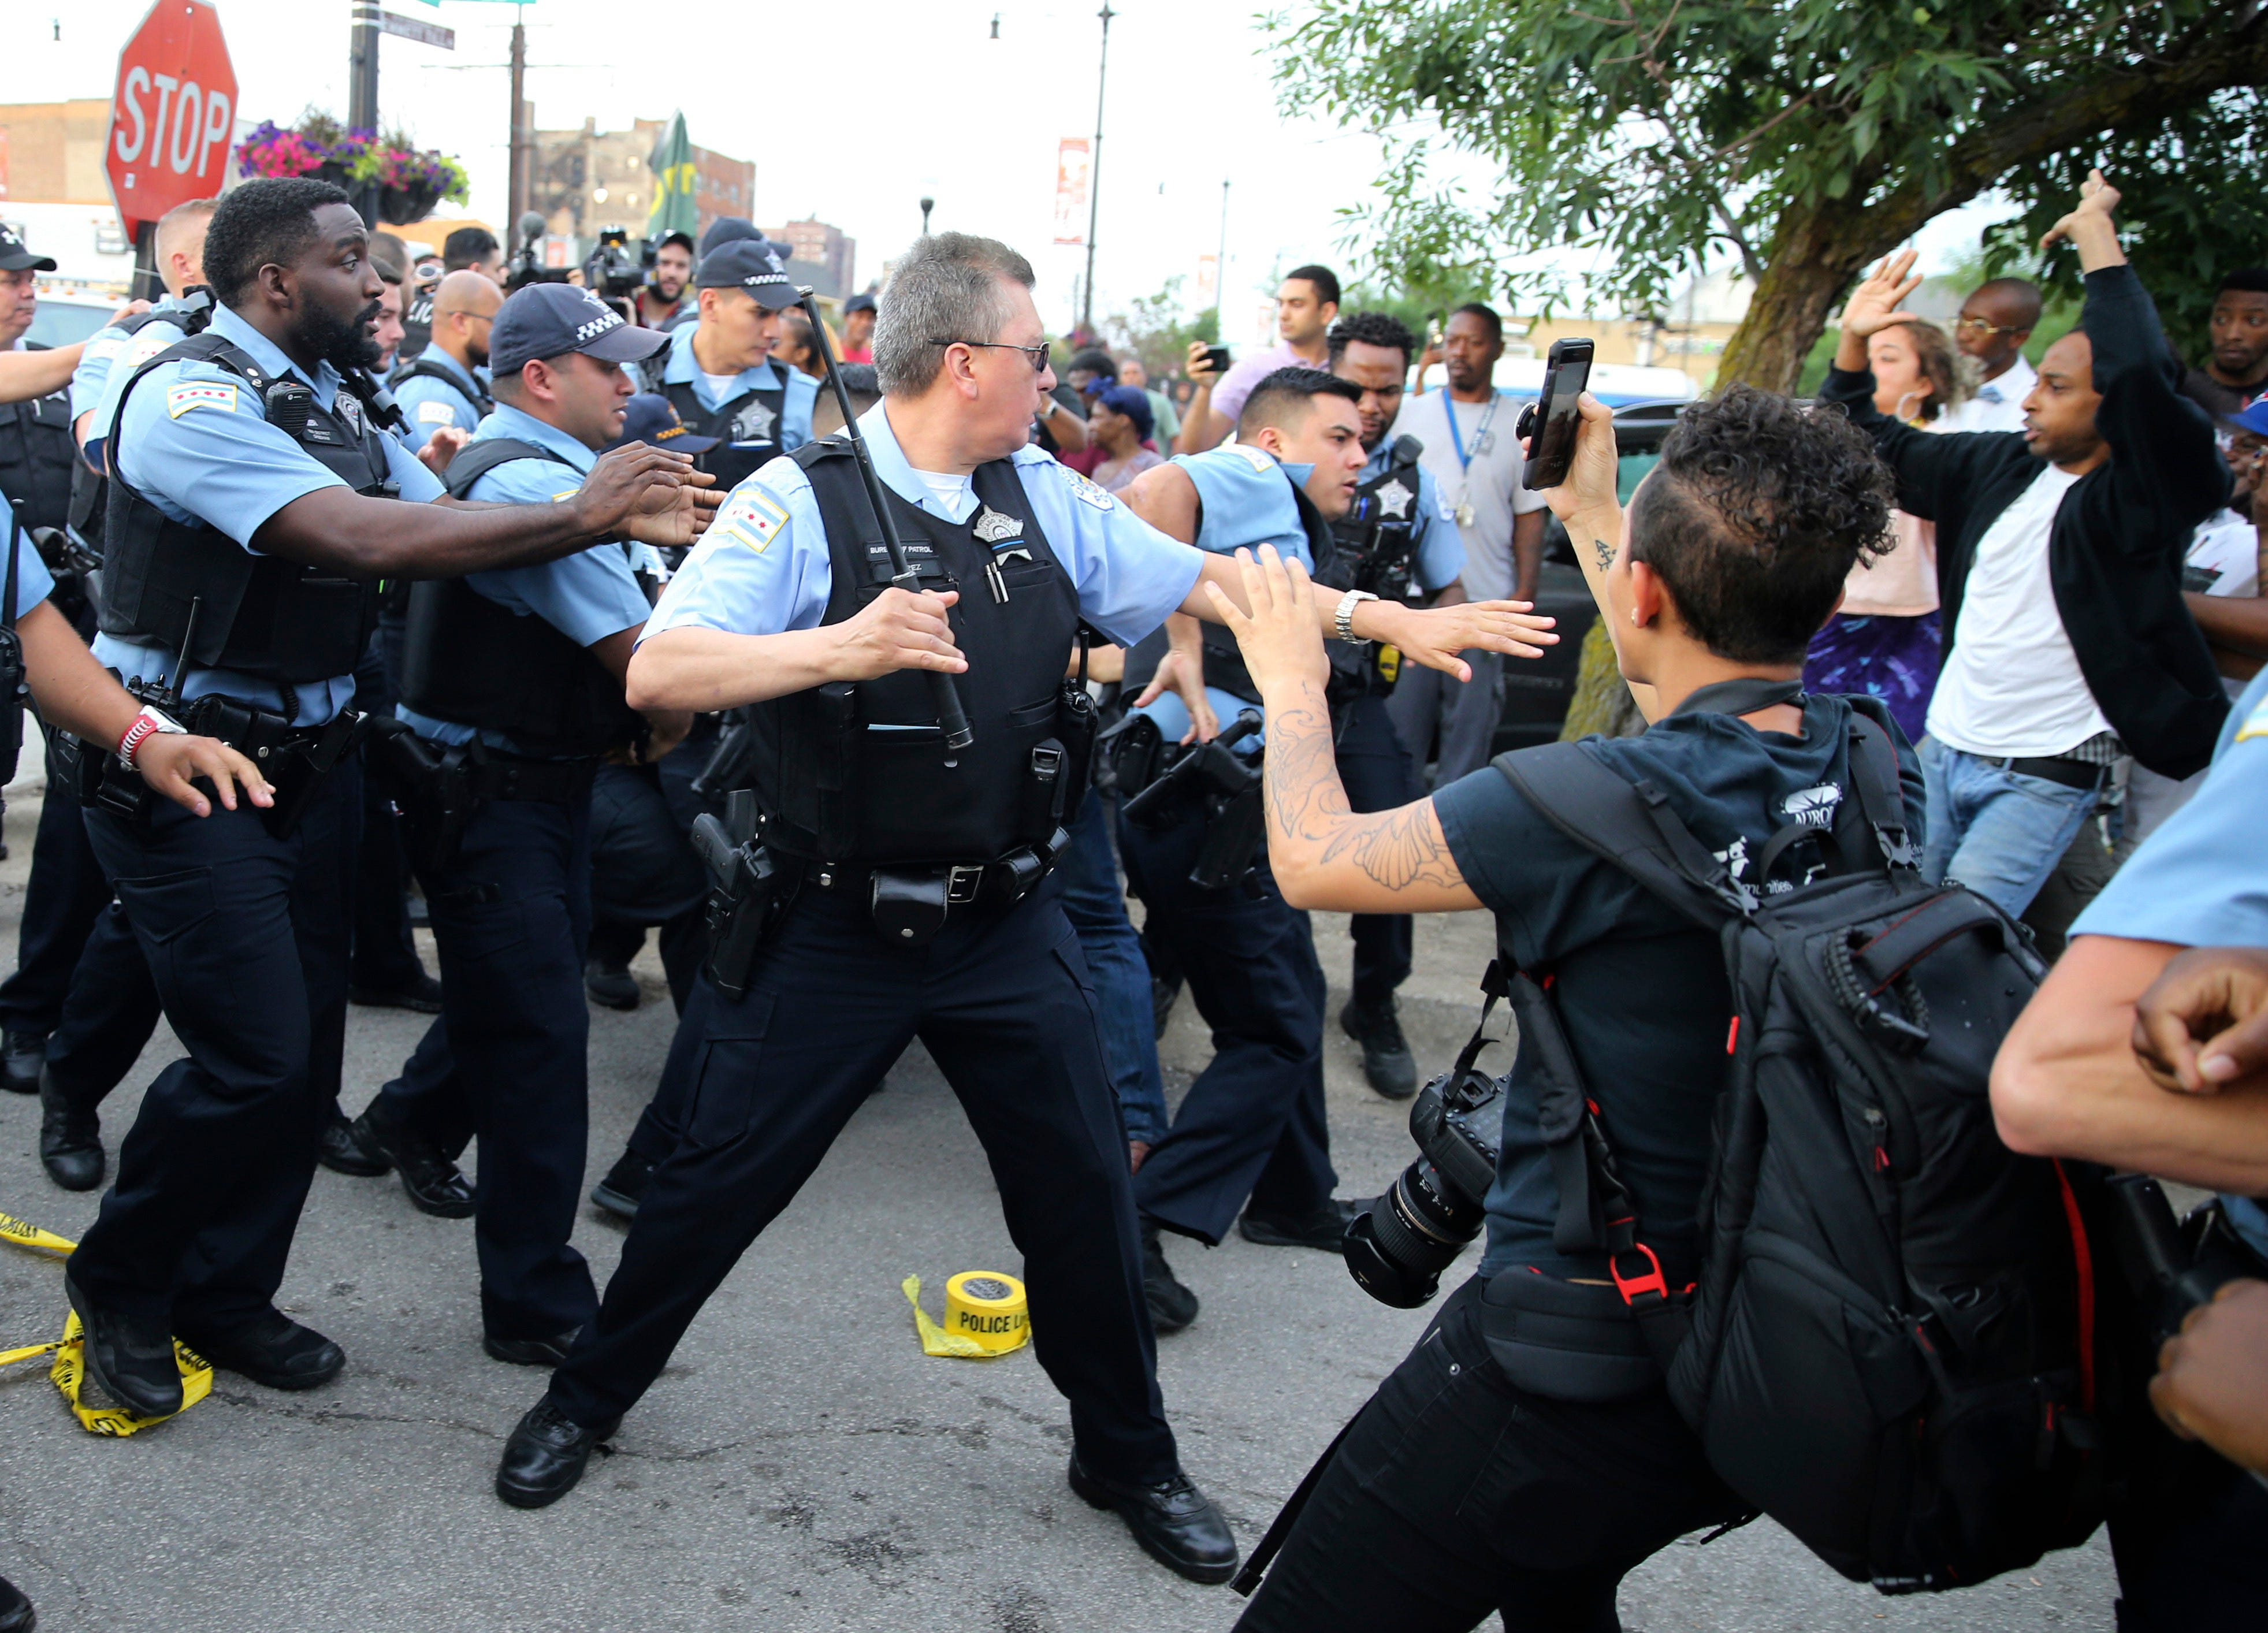 Cops and protesters scuffle after man fatally shot by Chicago police officer